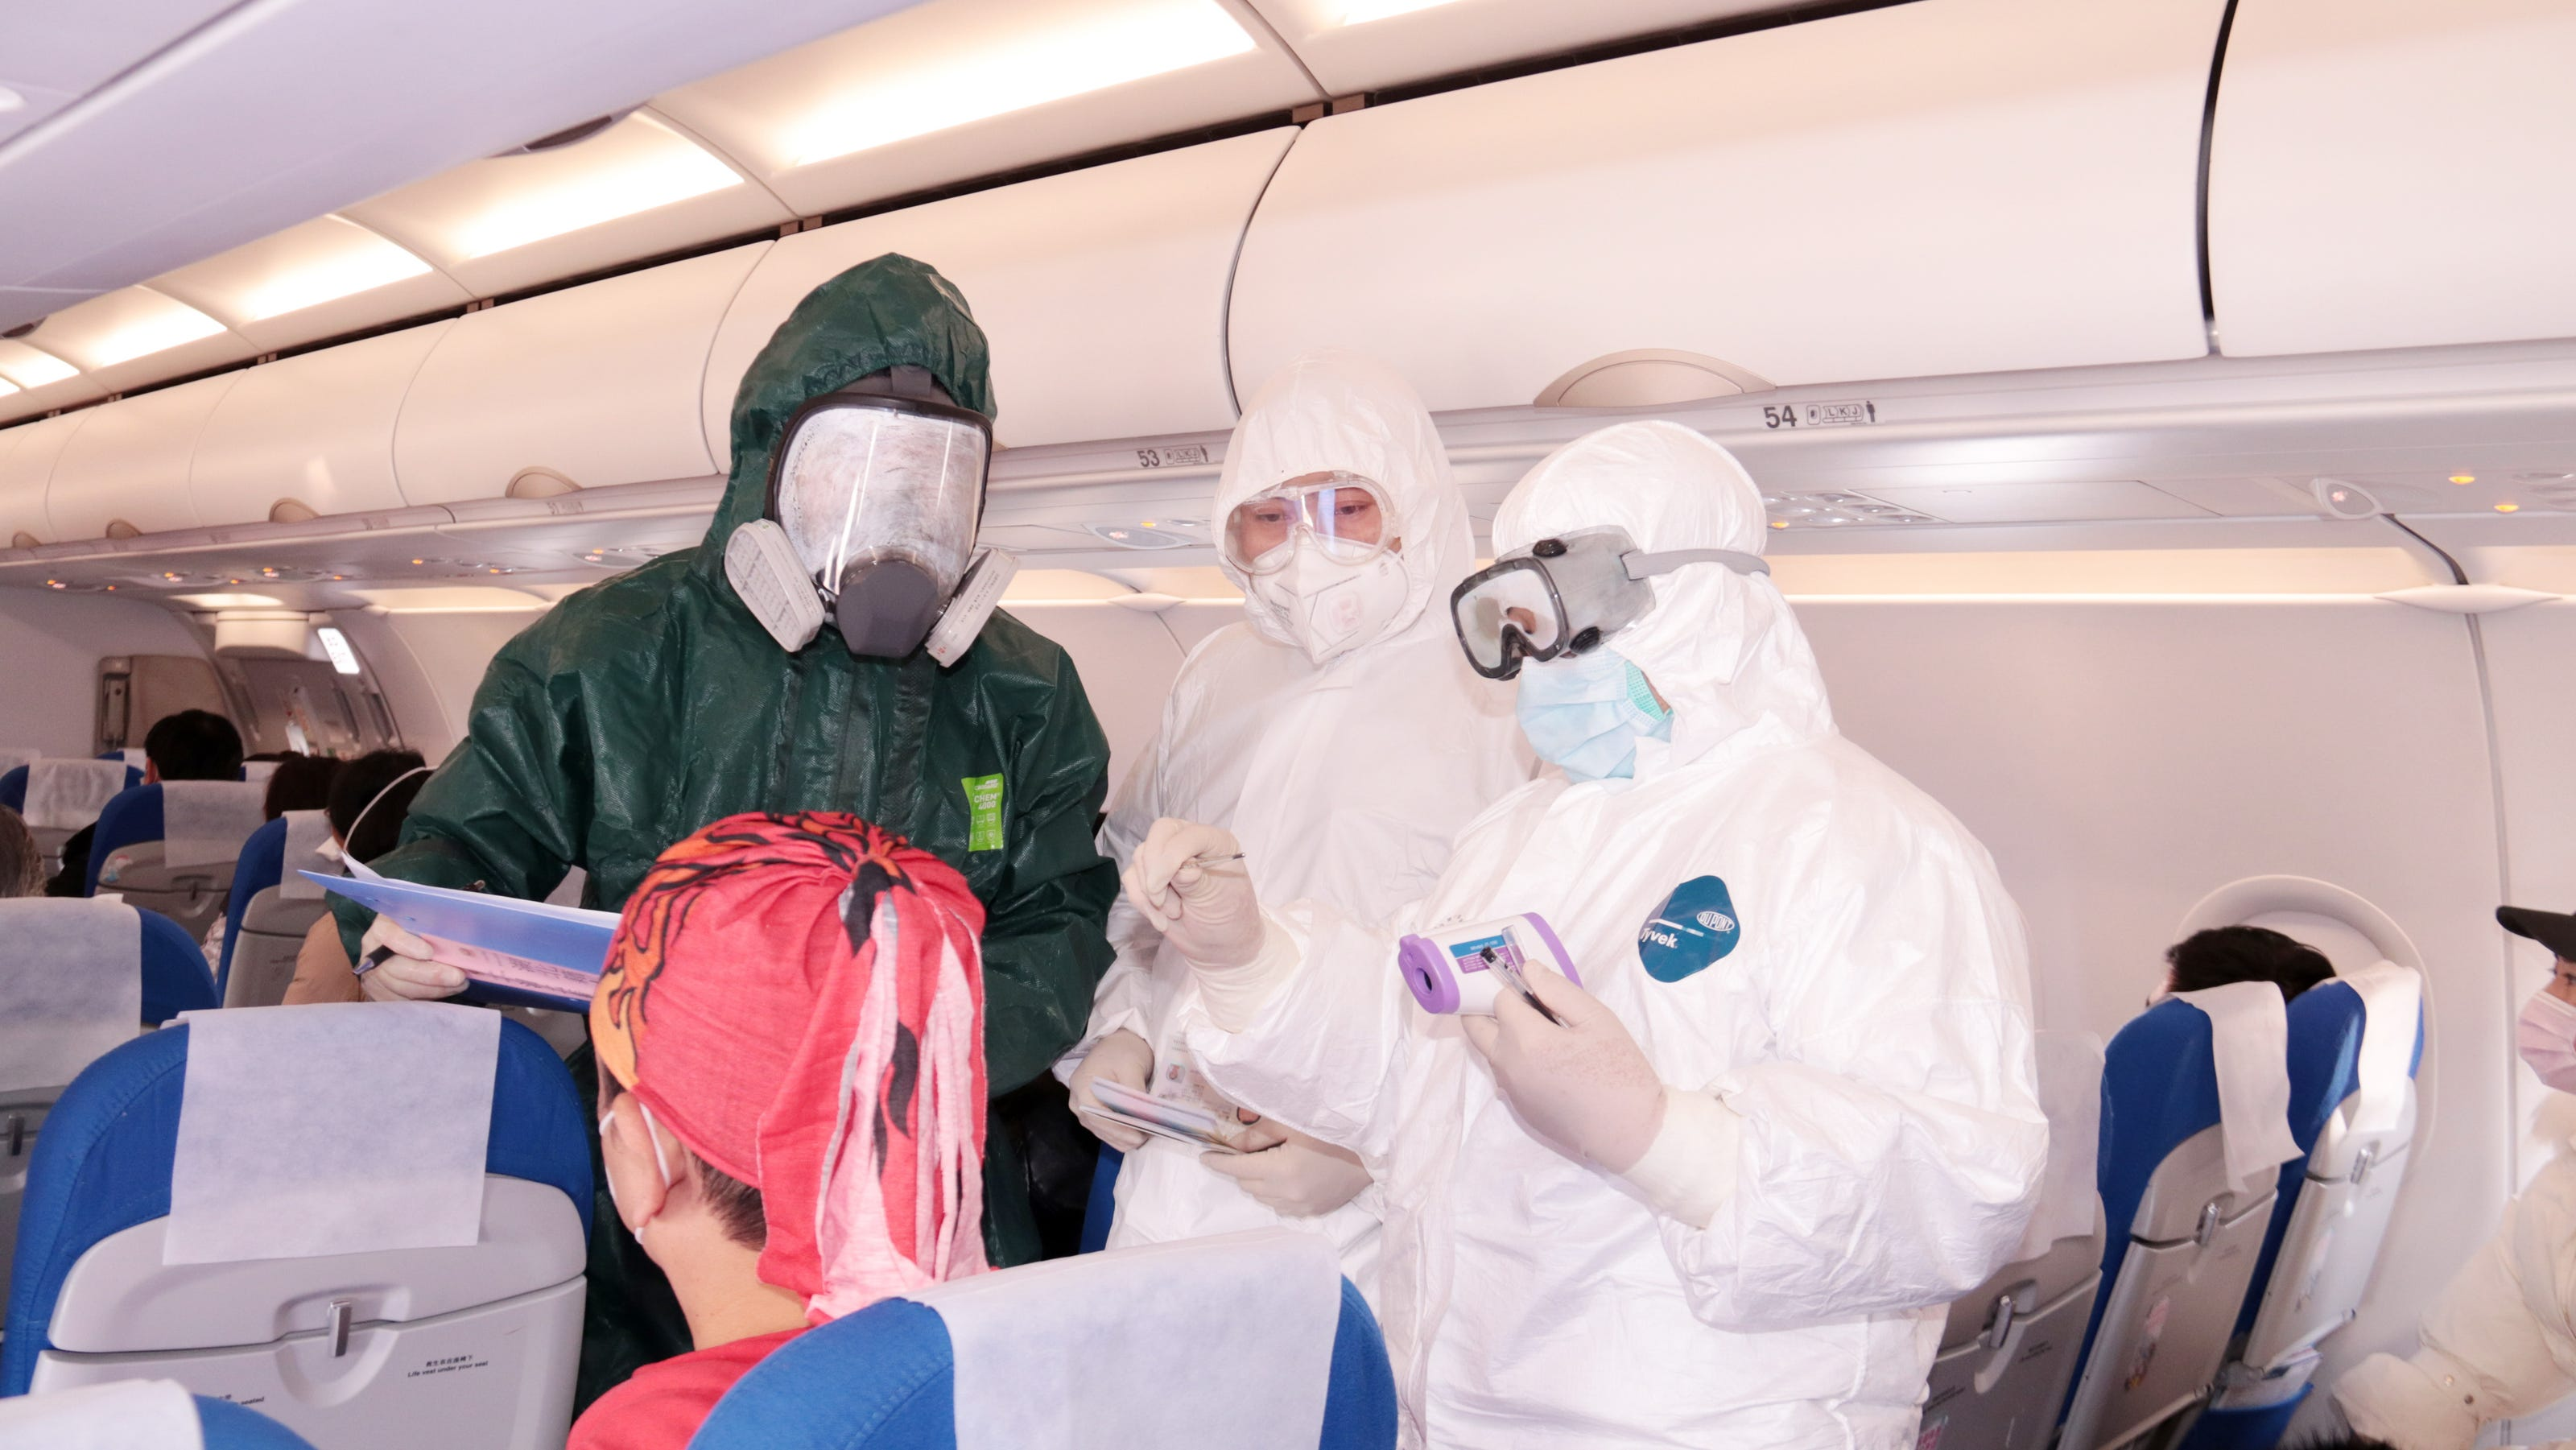 US learned from Ebola but is 'nowhere near as prepared' as needed if coronavirus outbreak happened here